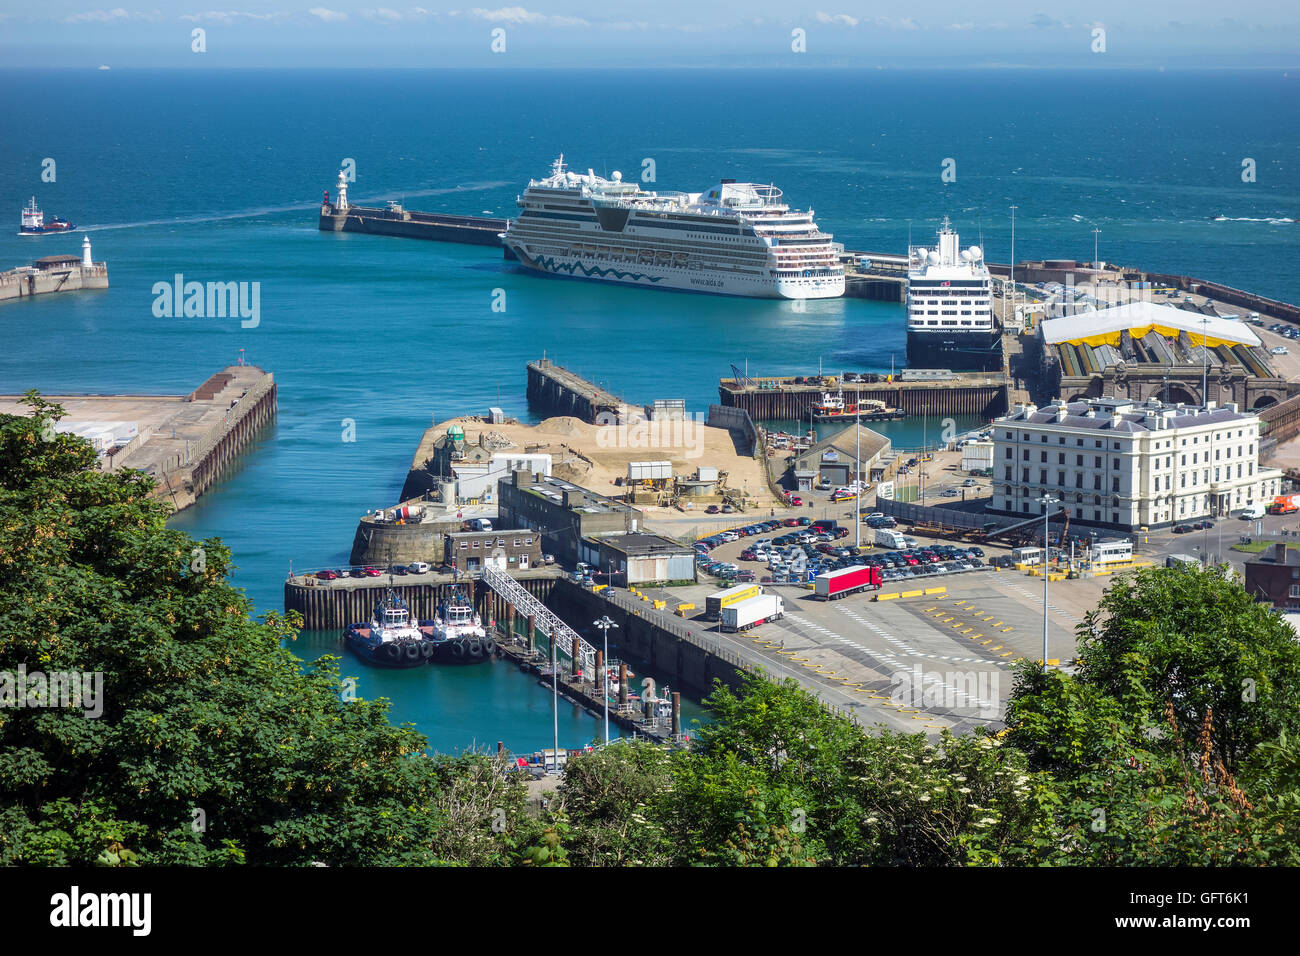 Ferry And Cruise Terminal Stock Photos Amp Ferry And Cruise Terminal Stock Images Alamy